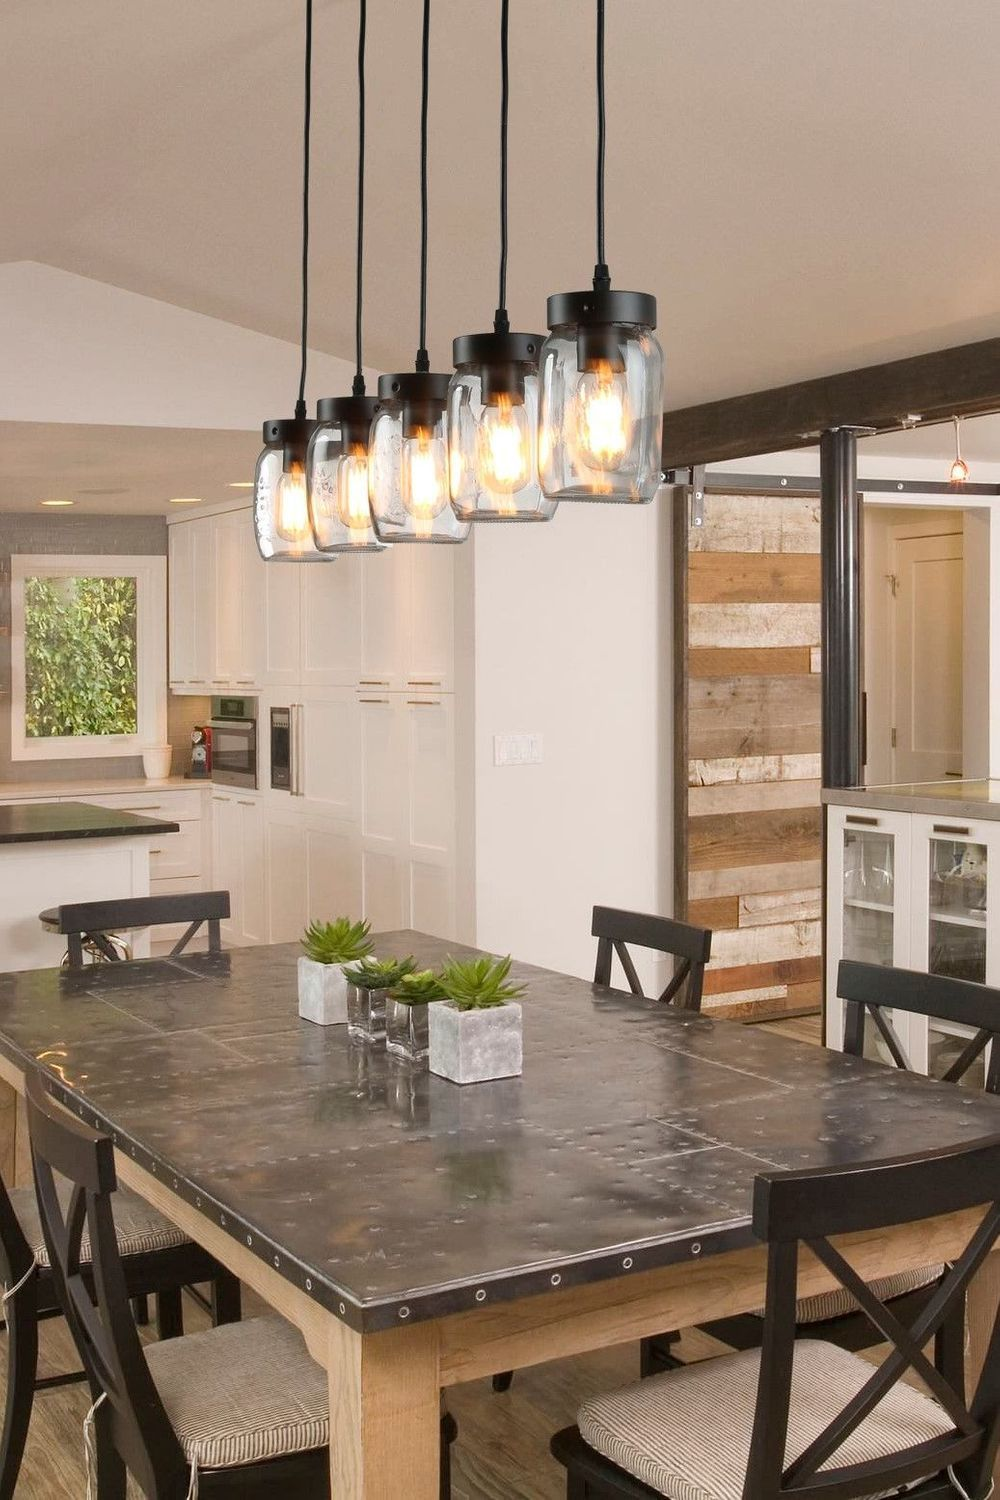 Home Ceiling Lights | Table Dining room Chandelier Pendant ... on Dining Table Ceiling Design  id=55121